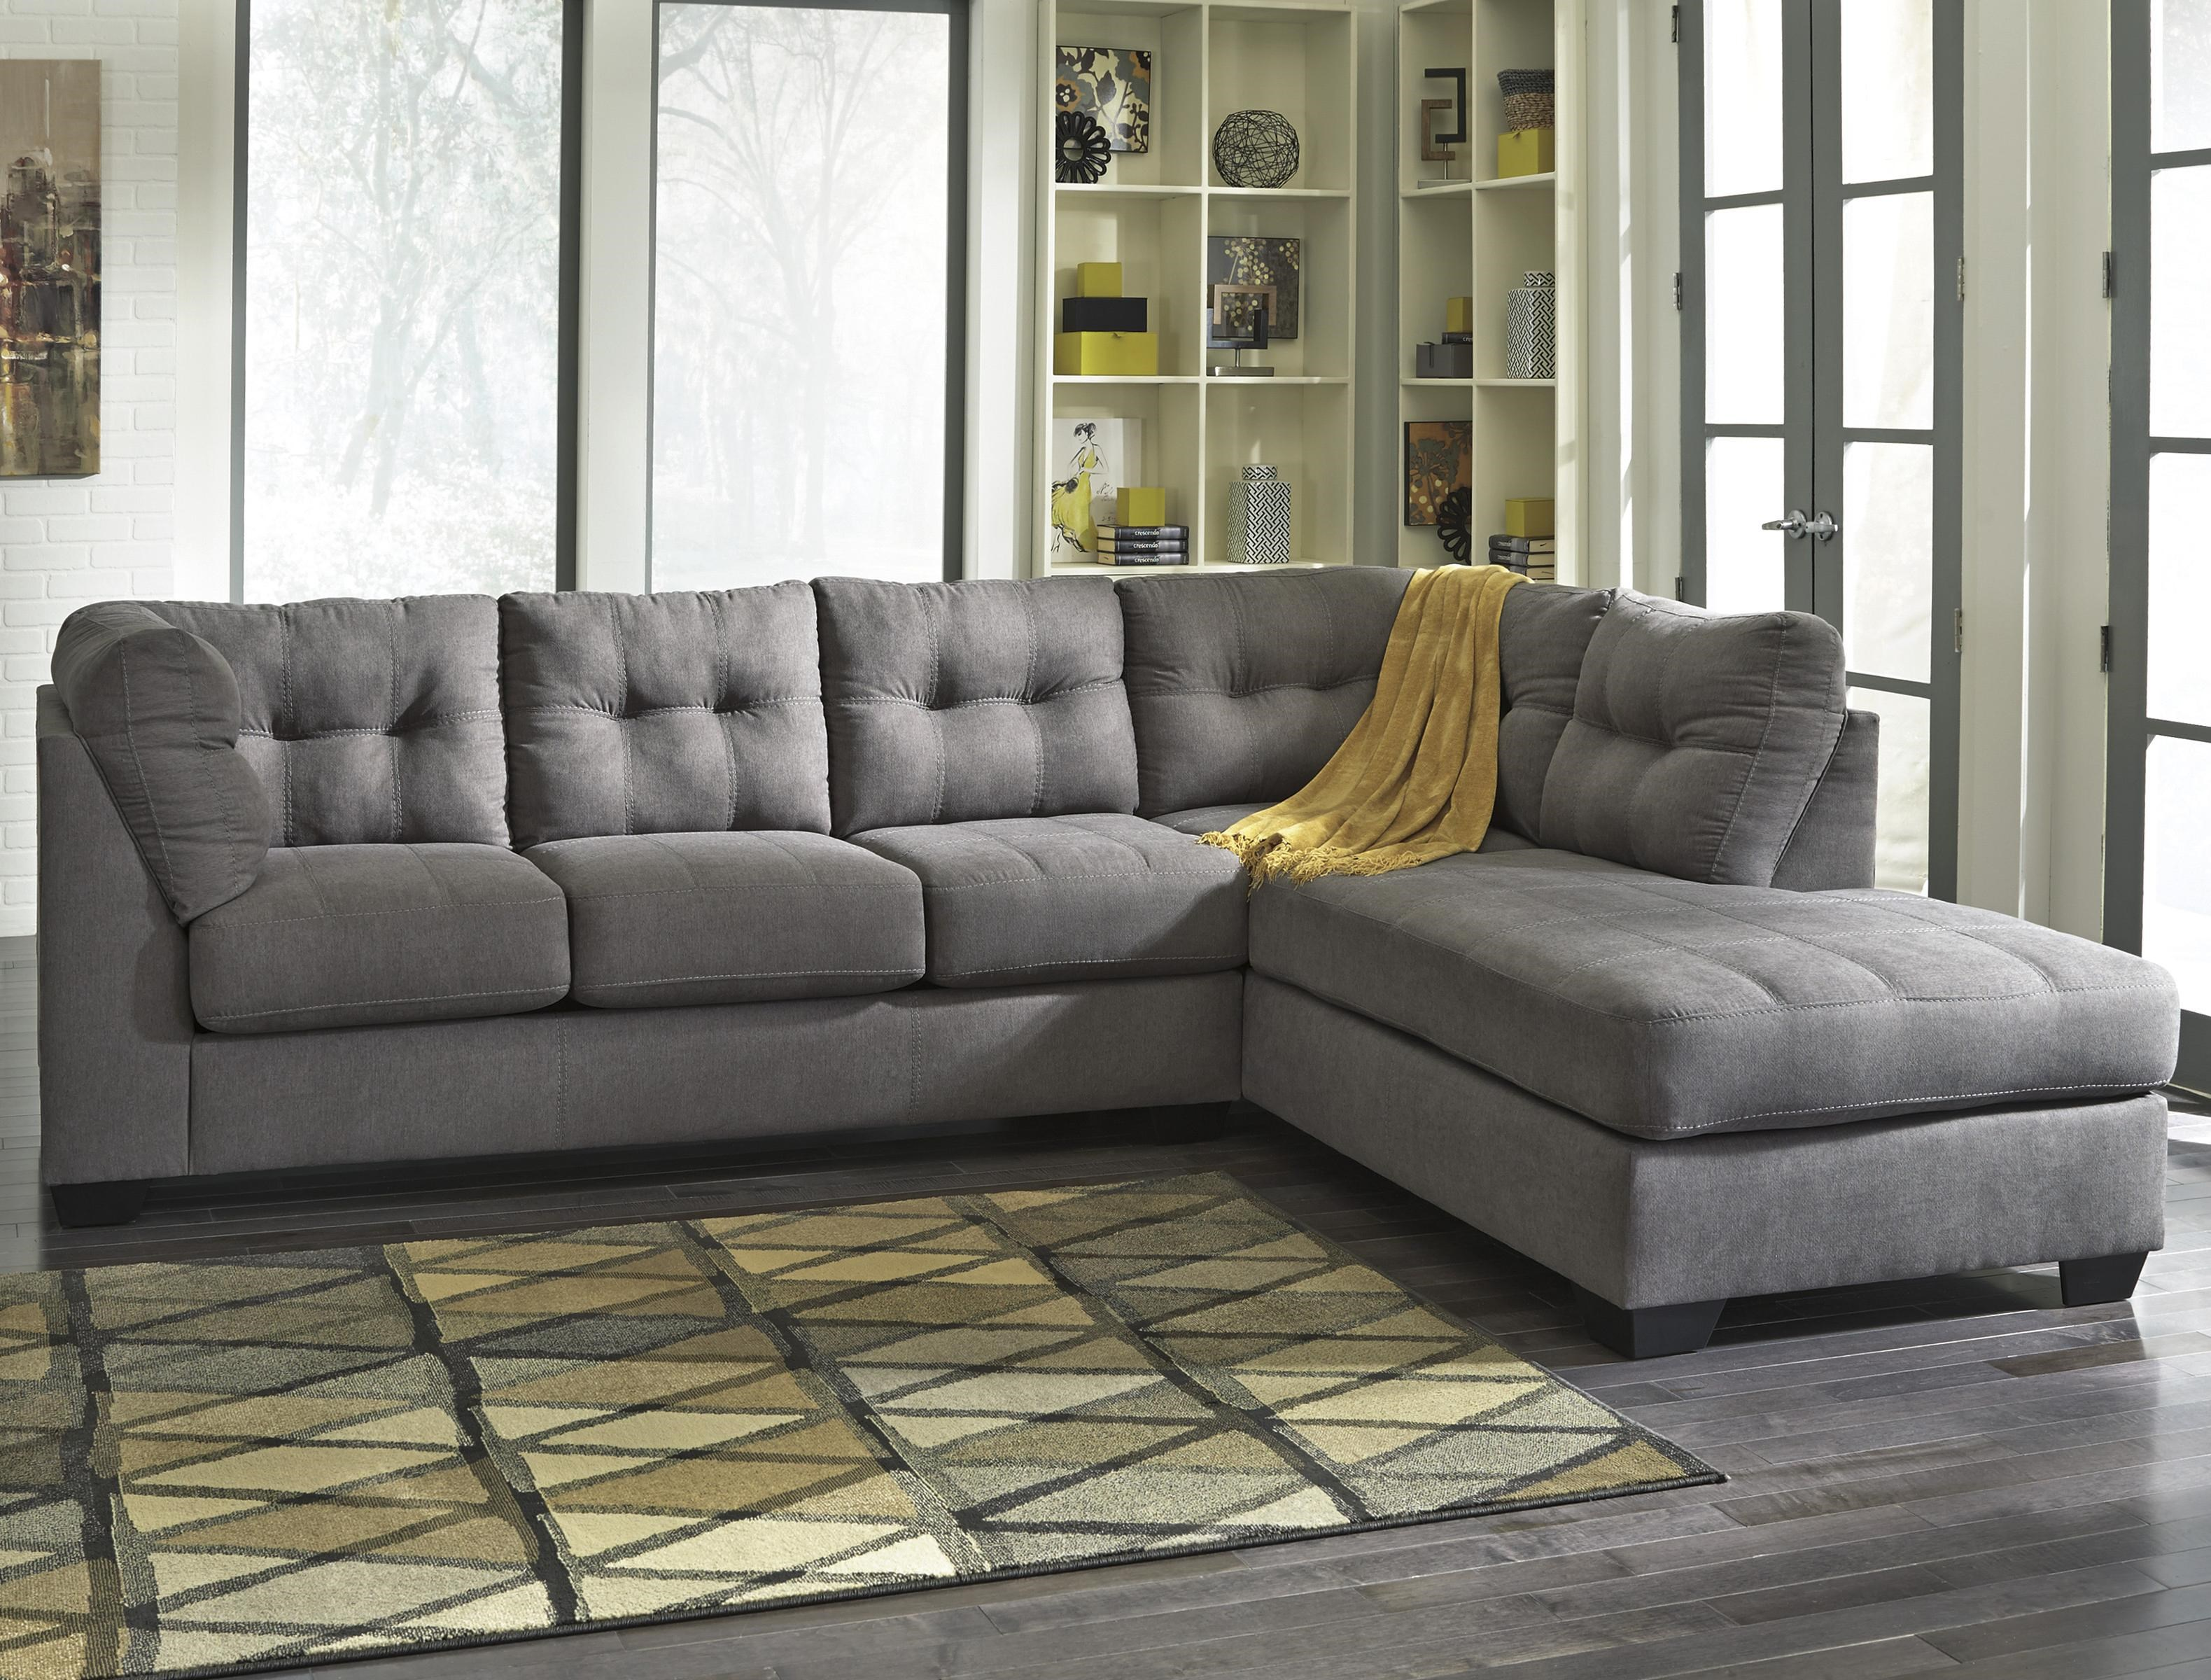 Benchcraft Maier   Charcoal 2 Piece Sectional With Right Chaise